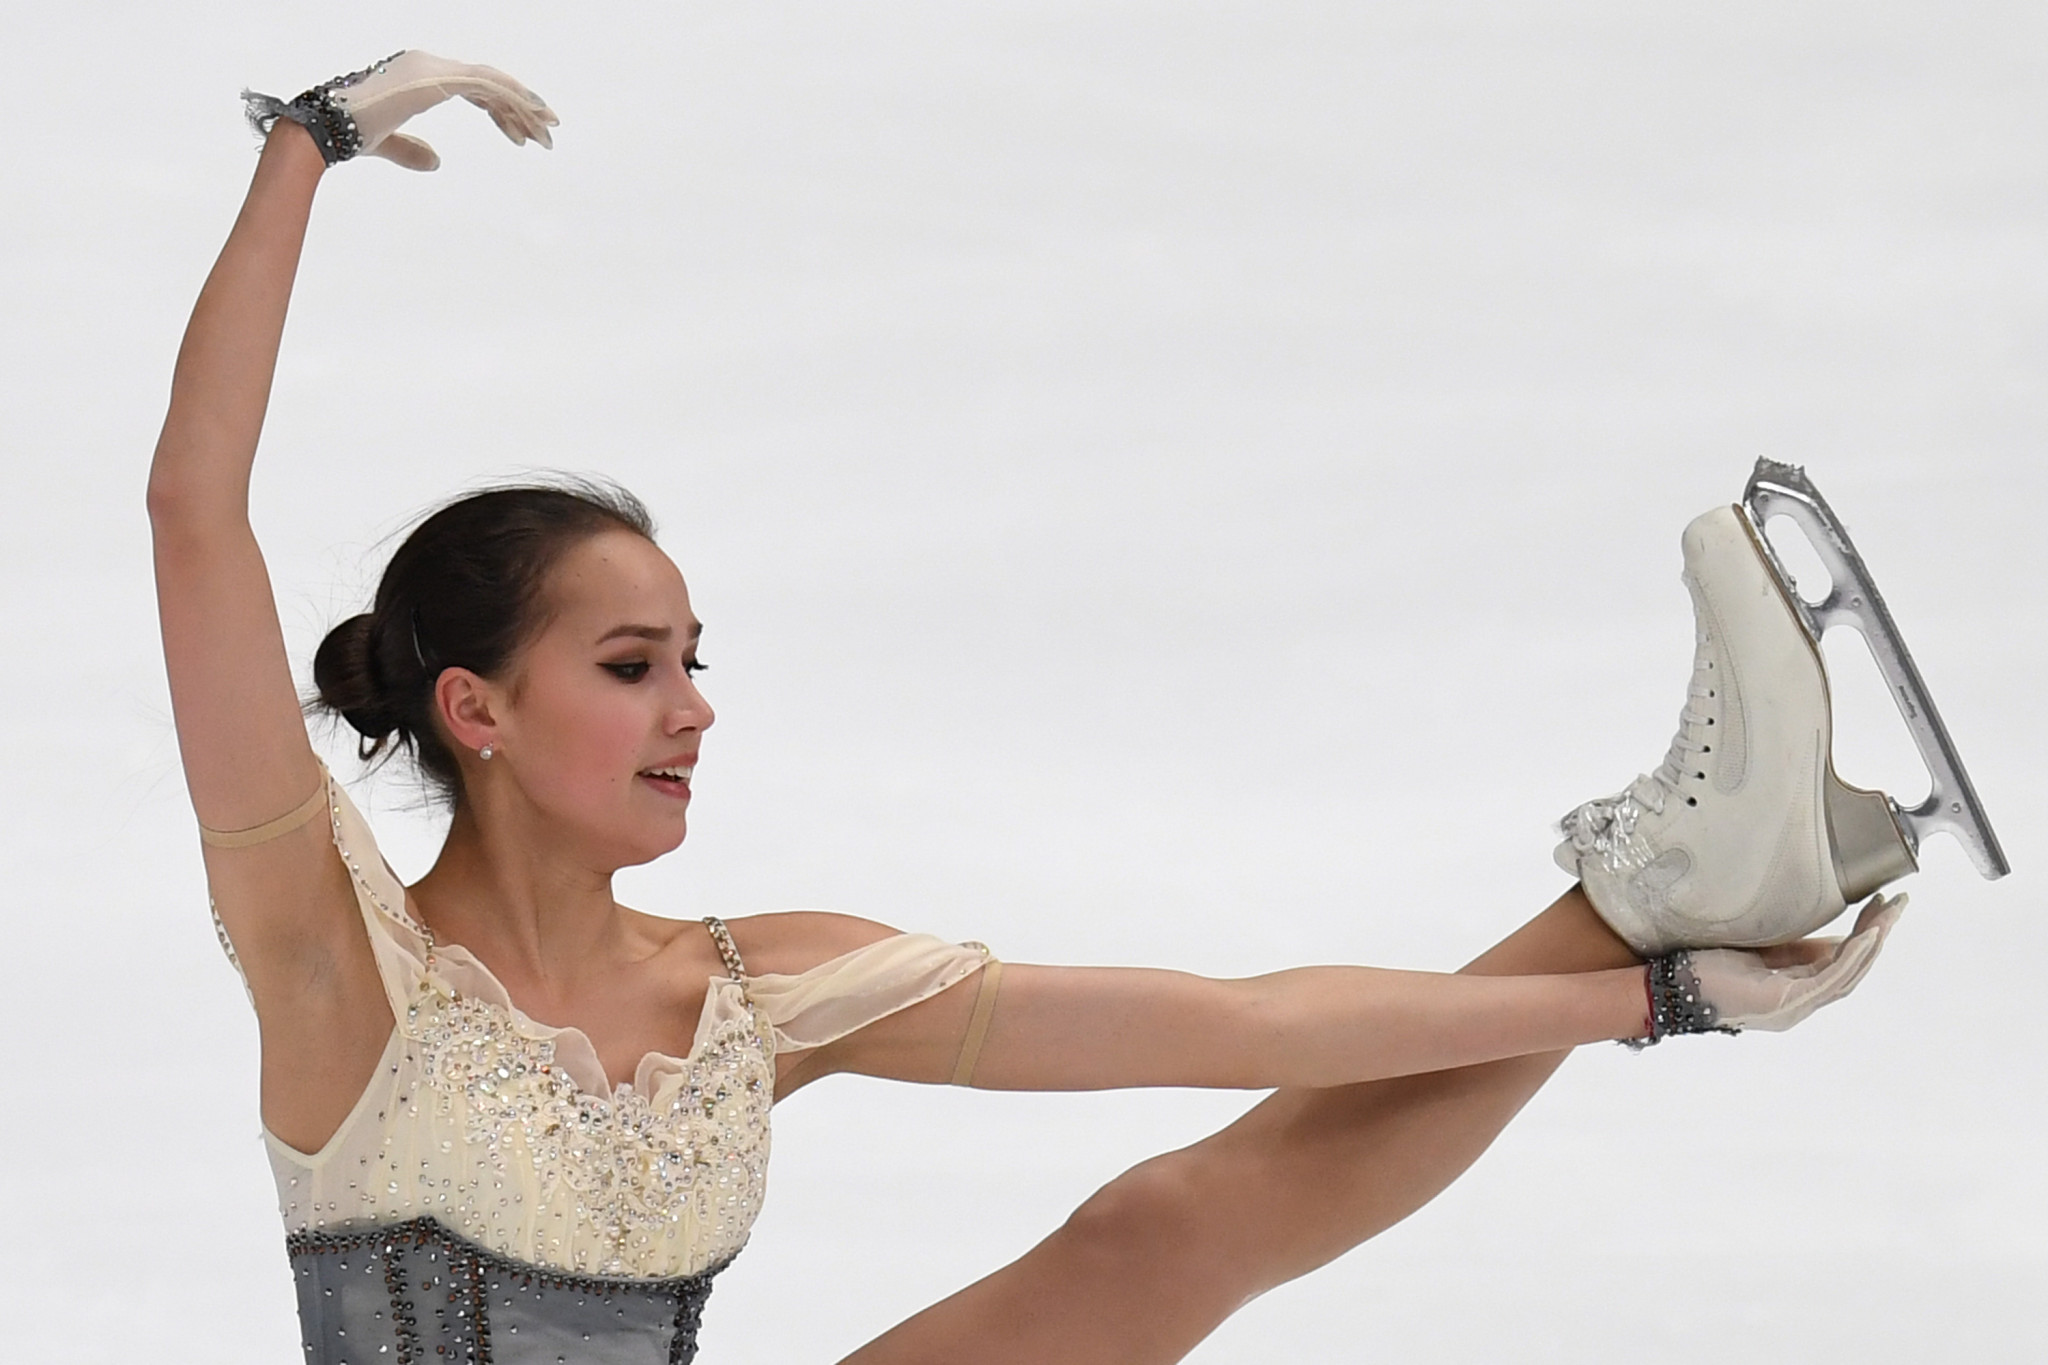 Russia's Alina Zagitova will aim to defend her ladies title ©Getty Images